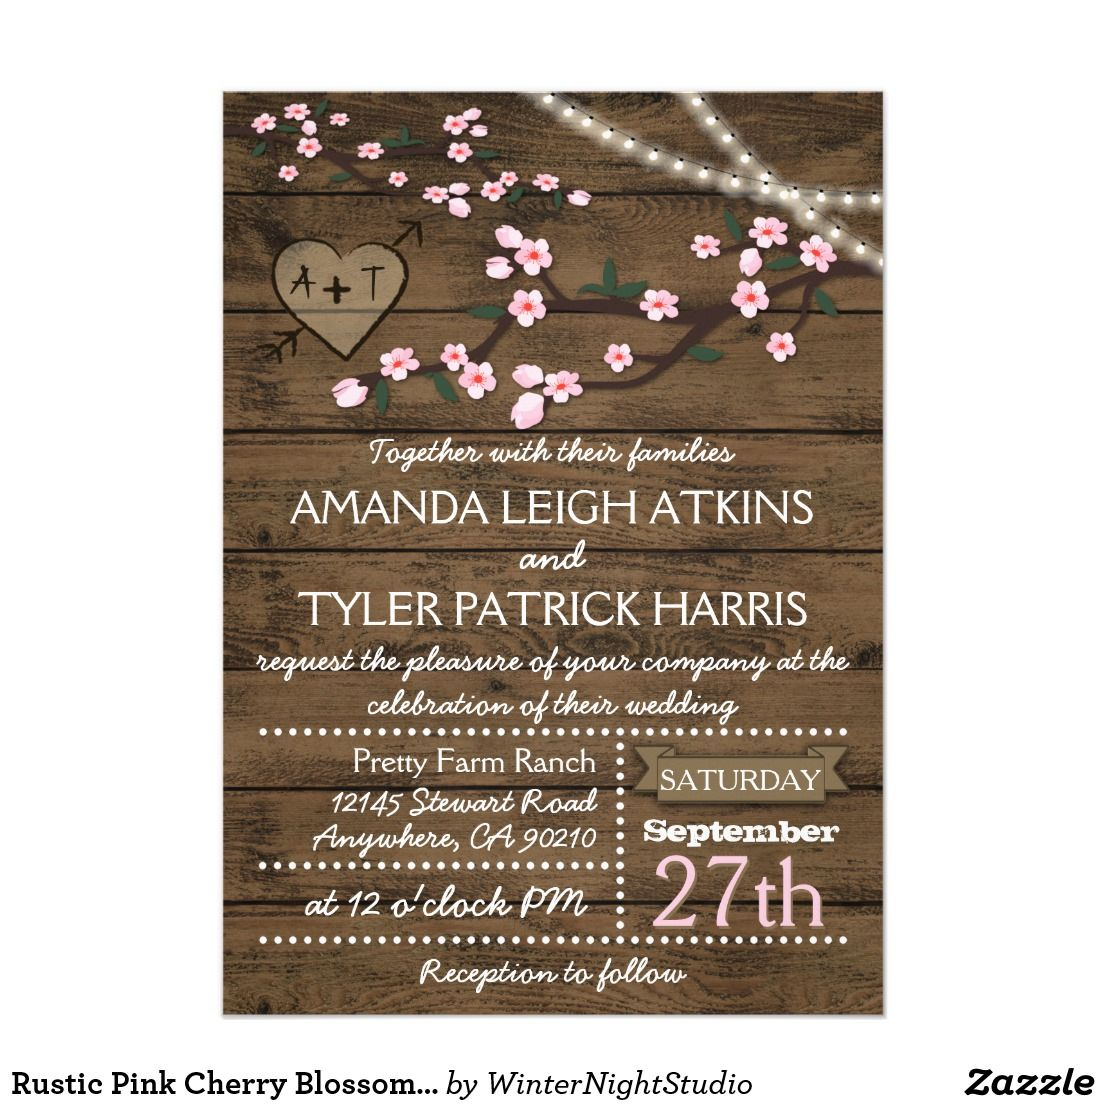 Rustic Pink Cherry Blossom Wedding Invitations | Pinterest | Country ...